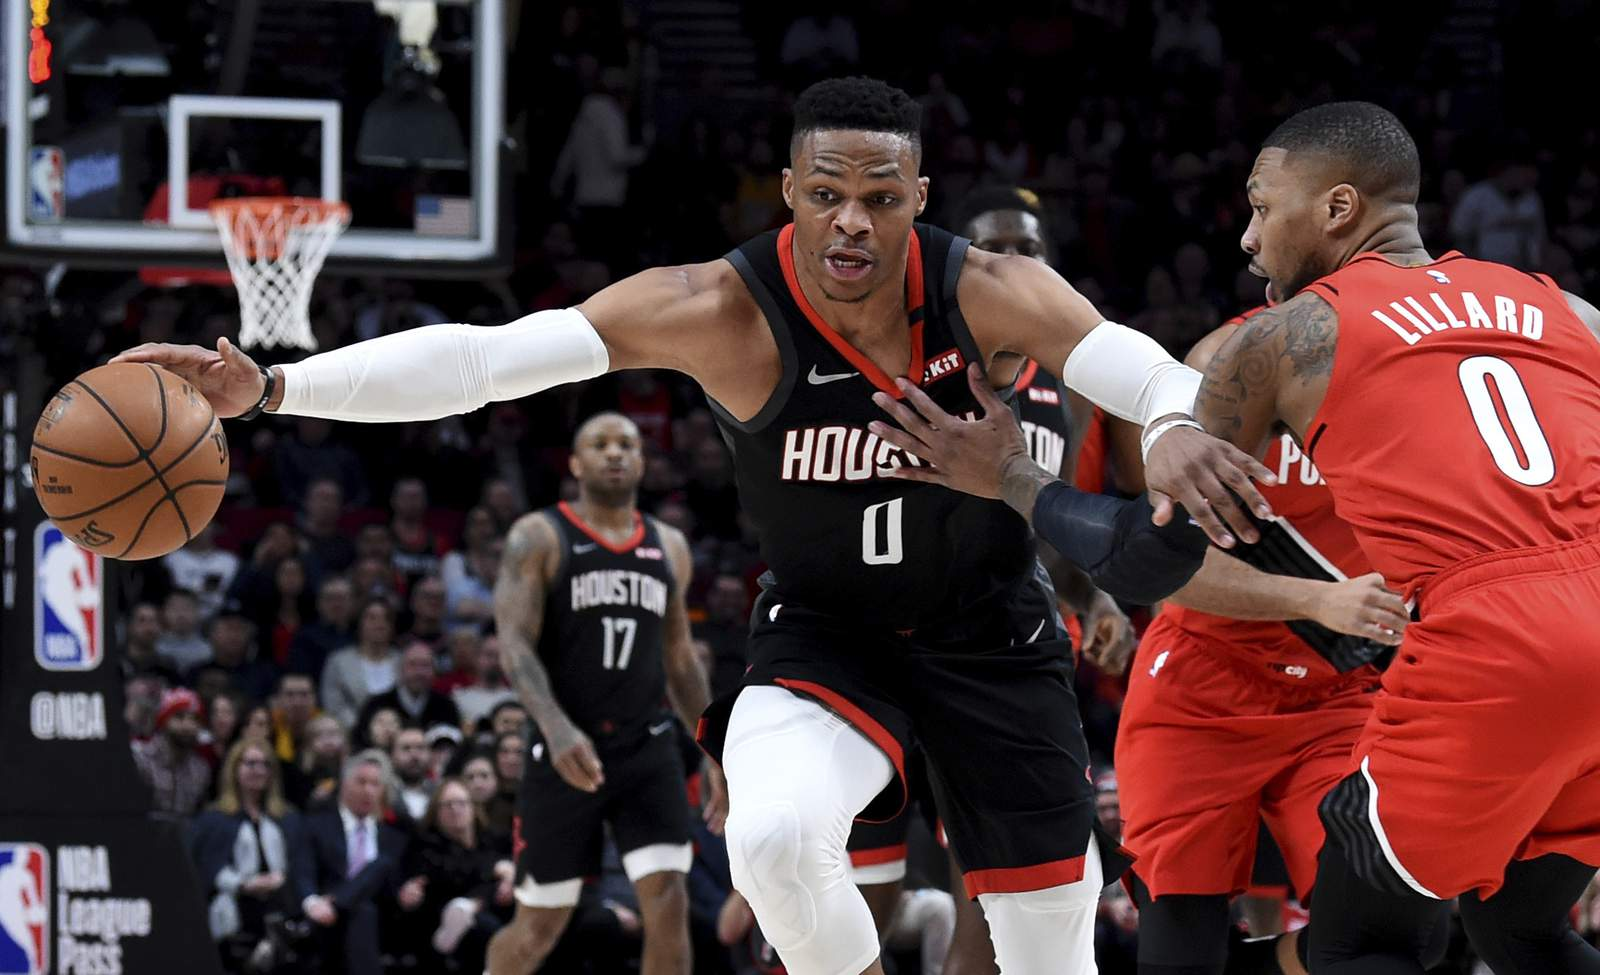 How To Watch The Houston Rockets Exhibition Game Against The Toronto Raptors Live From The Disney World Bubble In Orlando Tonight